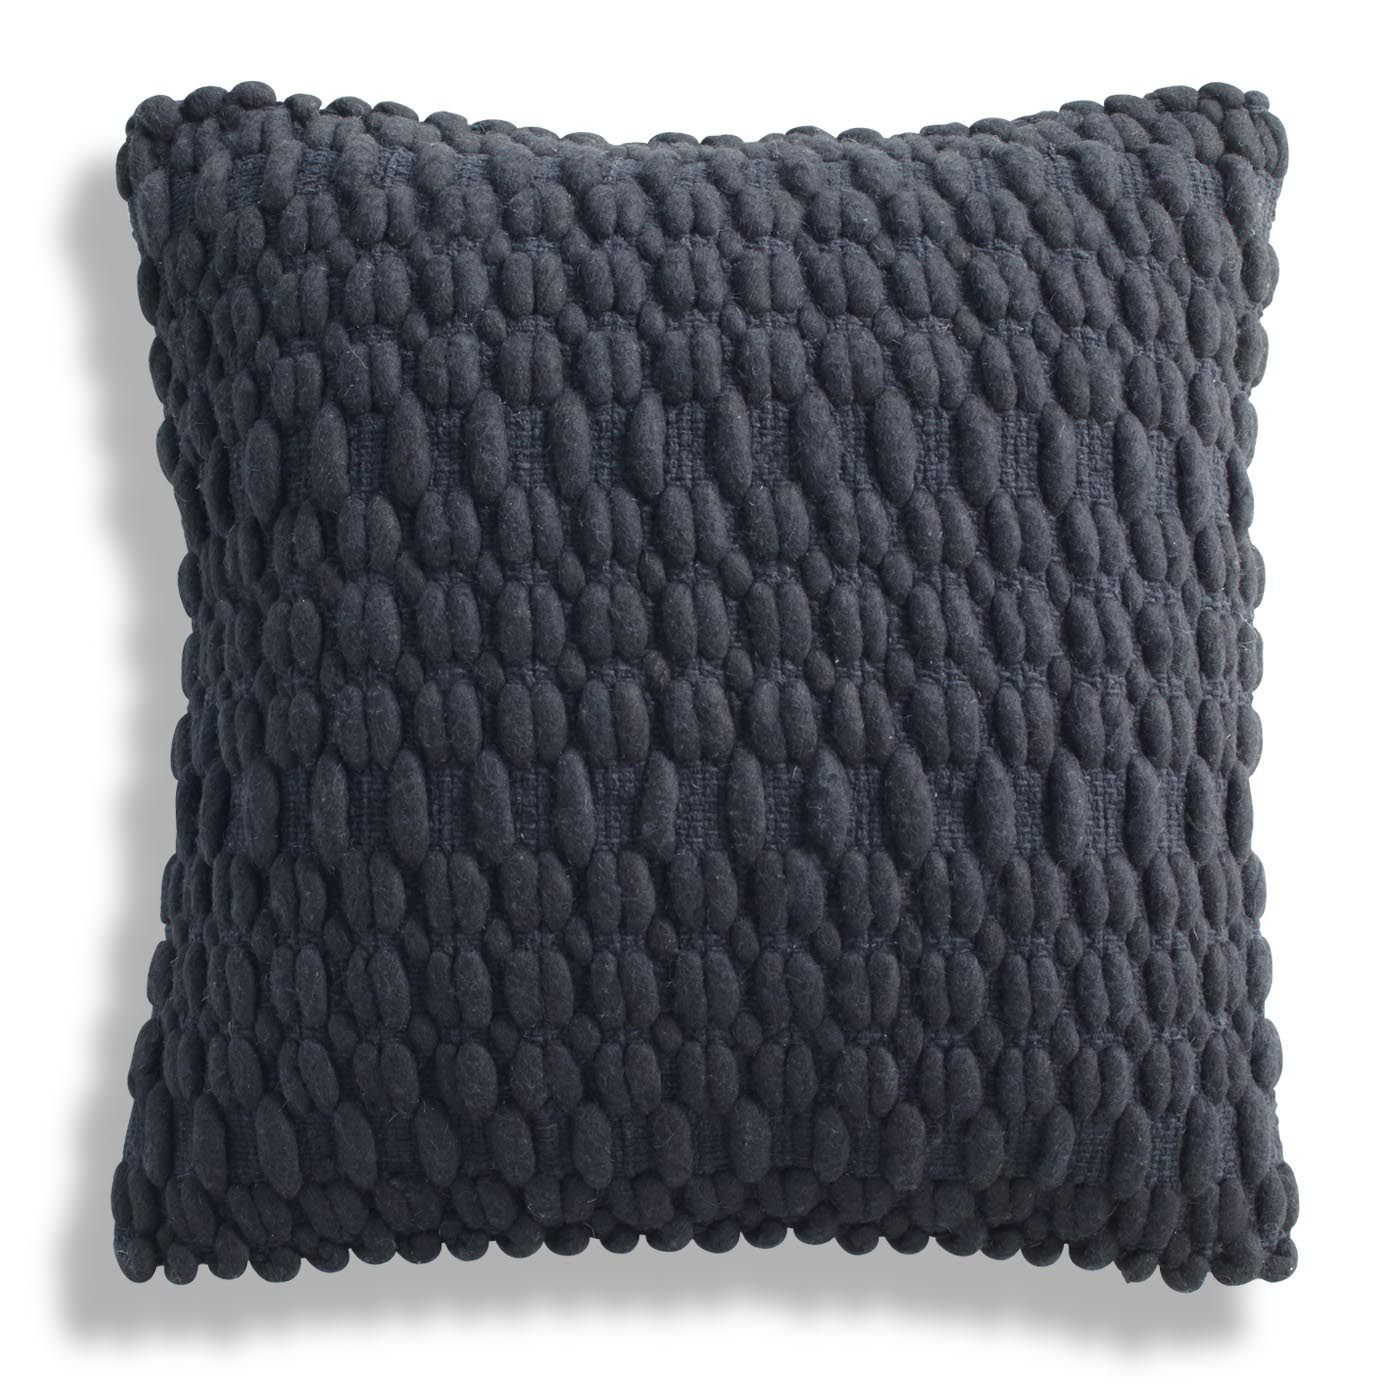 Decorative Pillows In Navy Blue : Navy Blue Throw Pillows Best Decor Things